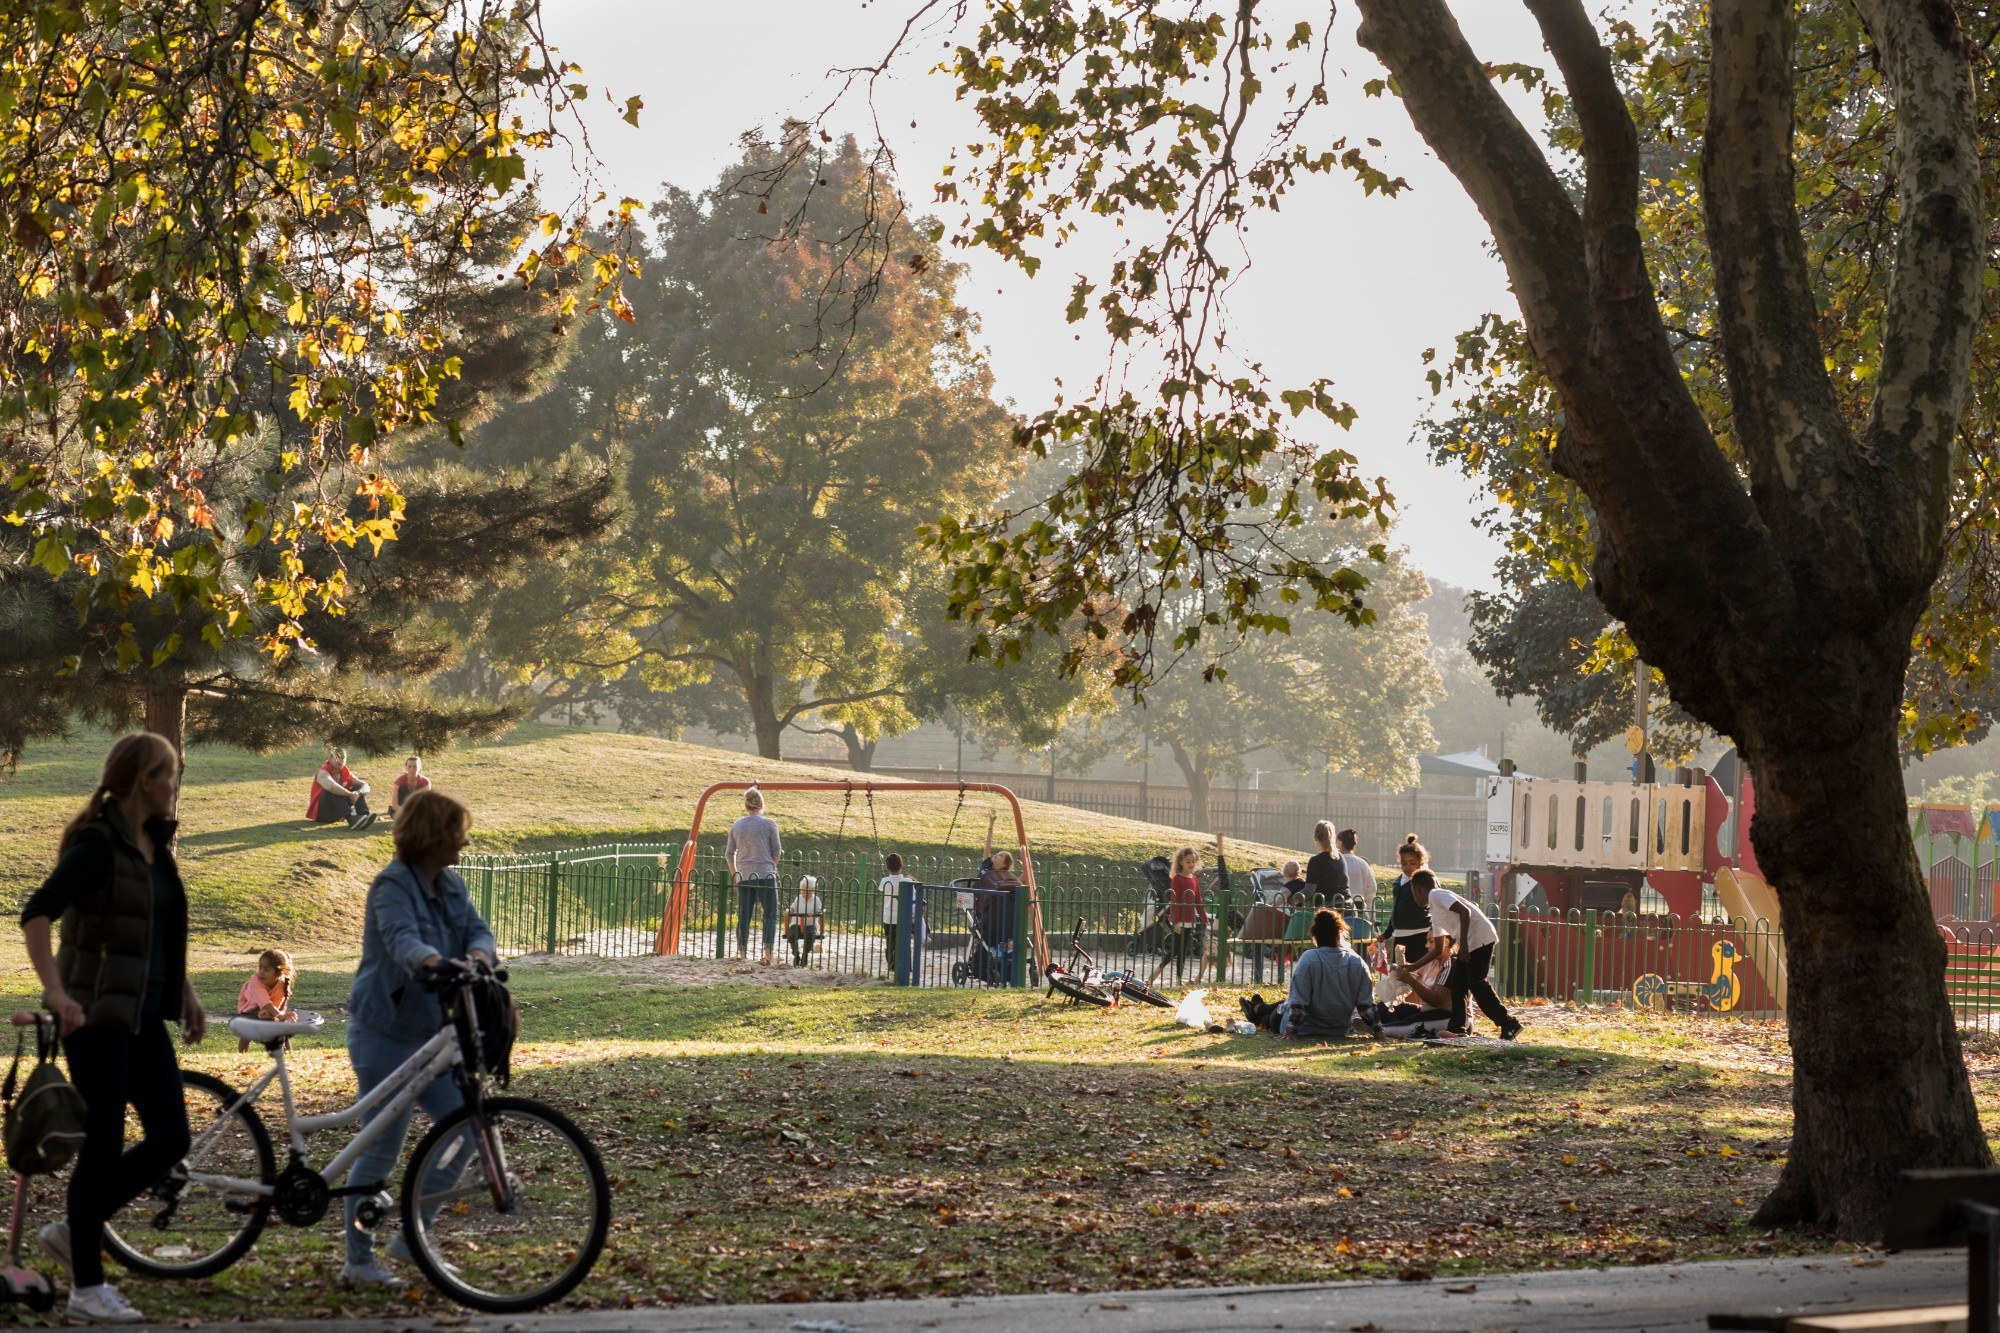 Groups of people playing at New Beckton Park